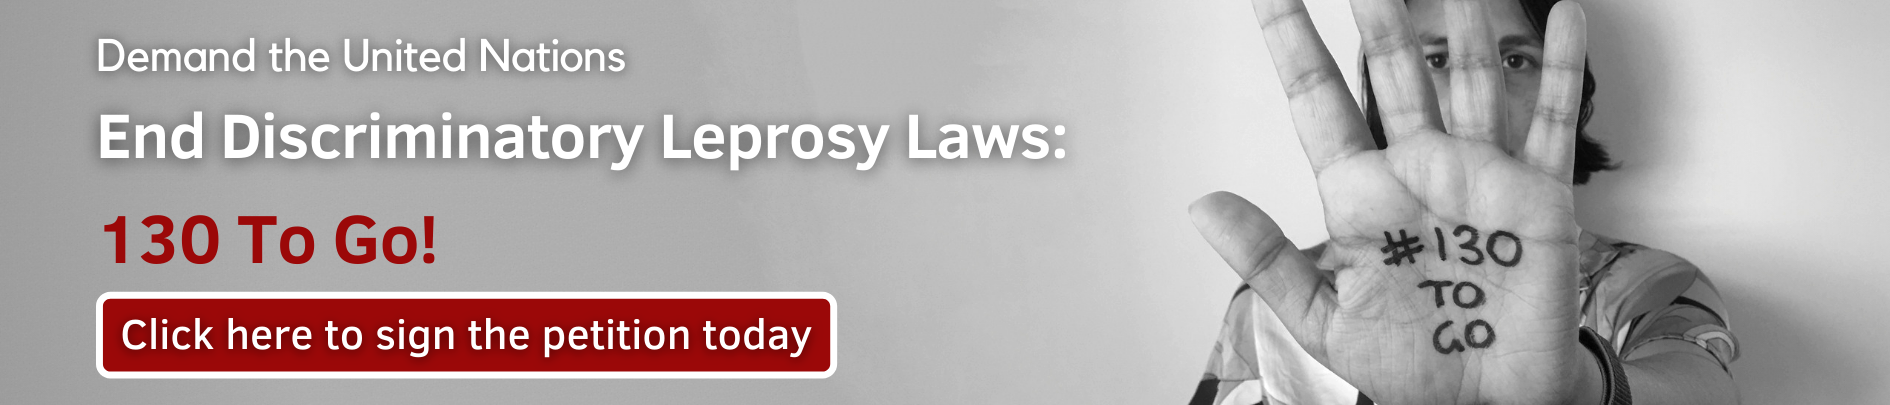 Leprosy laws